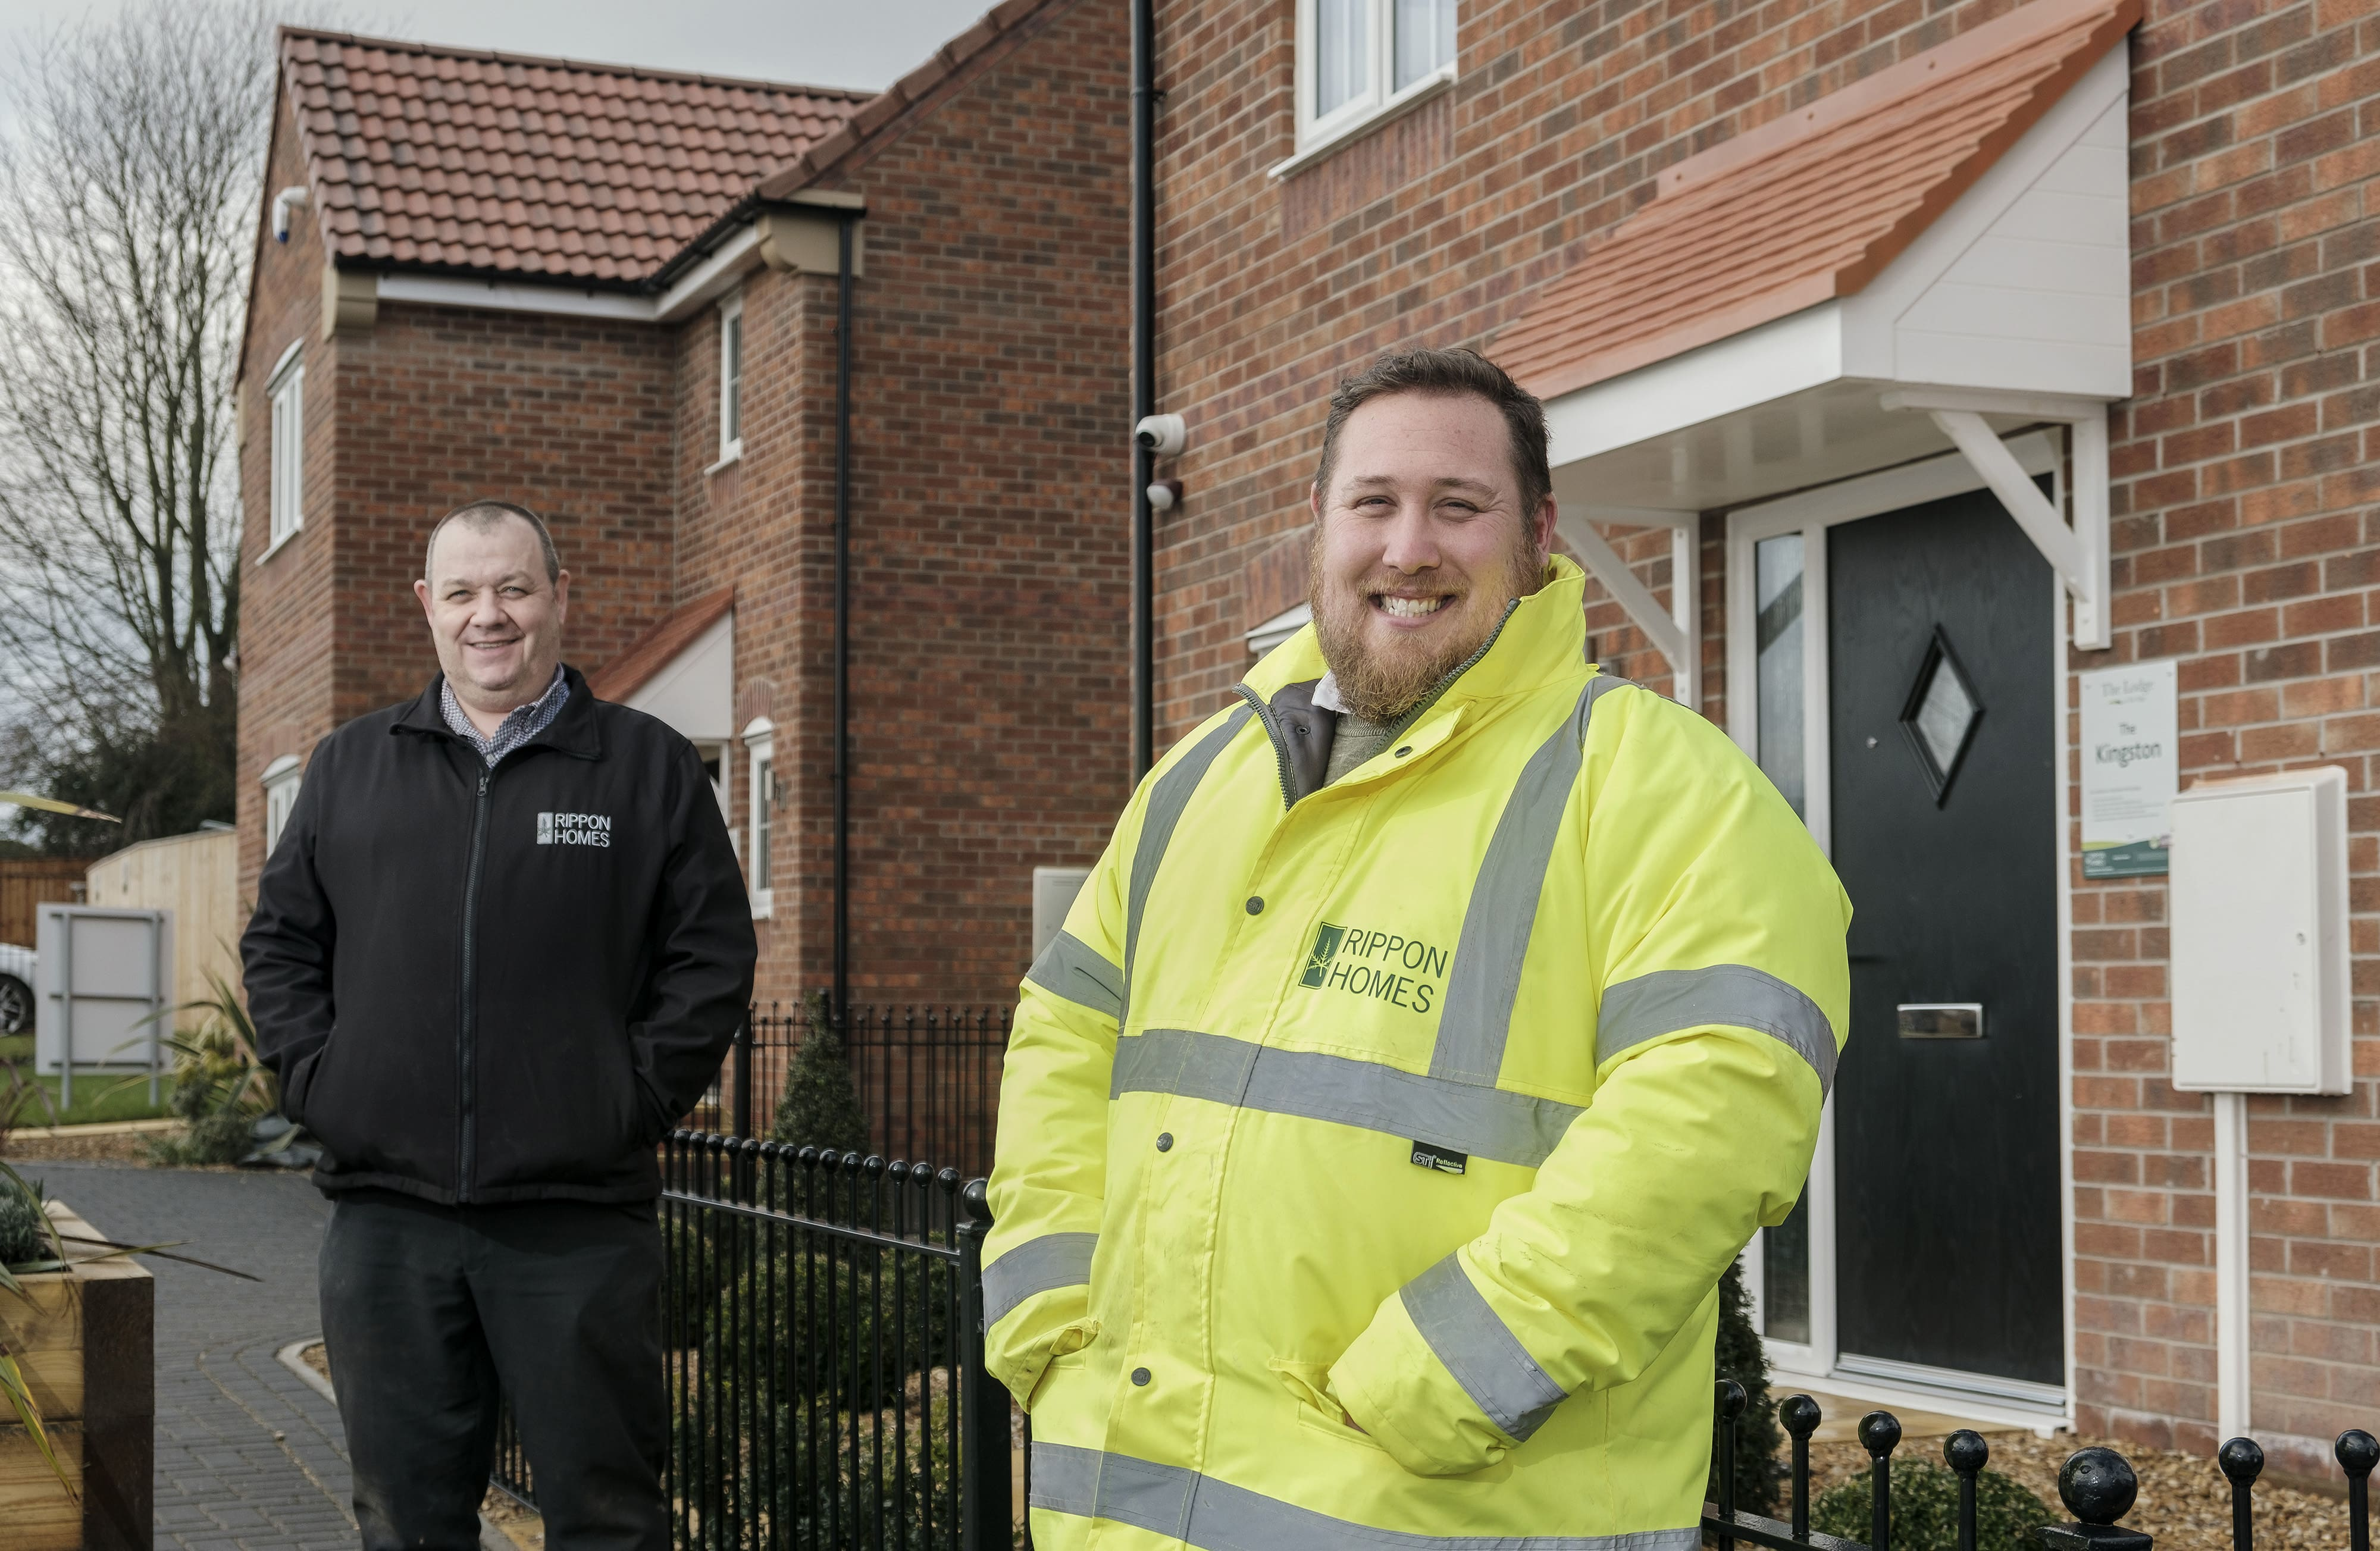 Meet the team building quality homes in Worksop